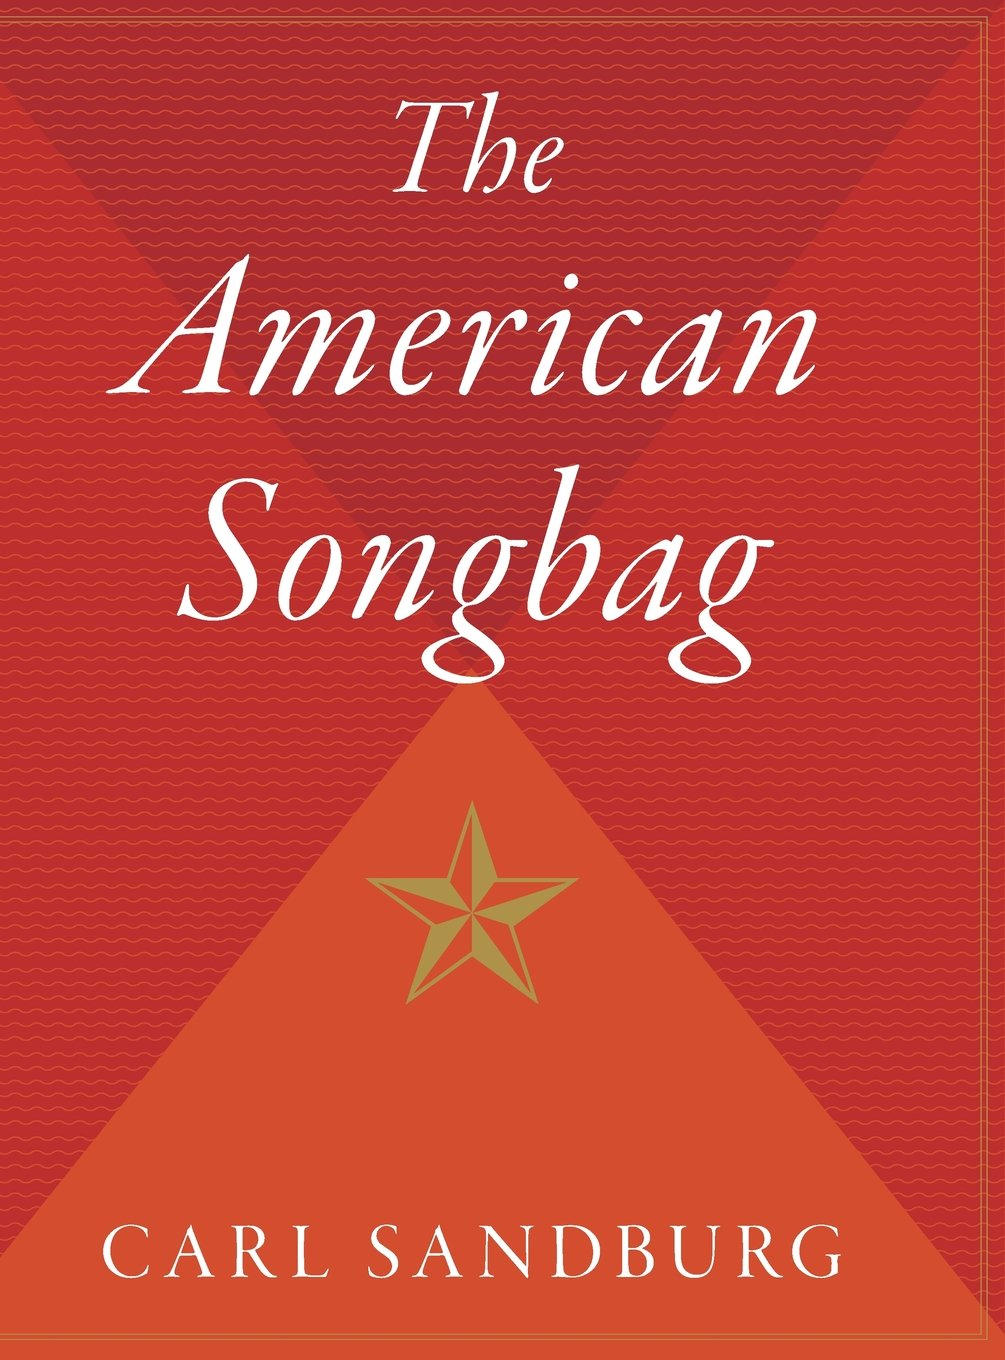 The American Songbag Carl Sandburg Garrison Keillor 9780544309784